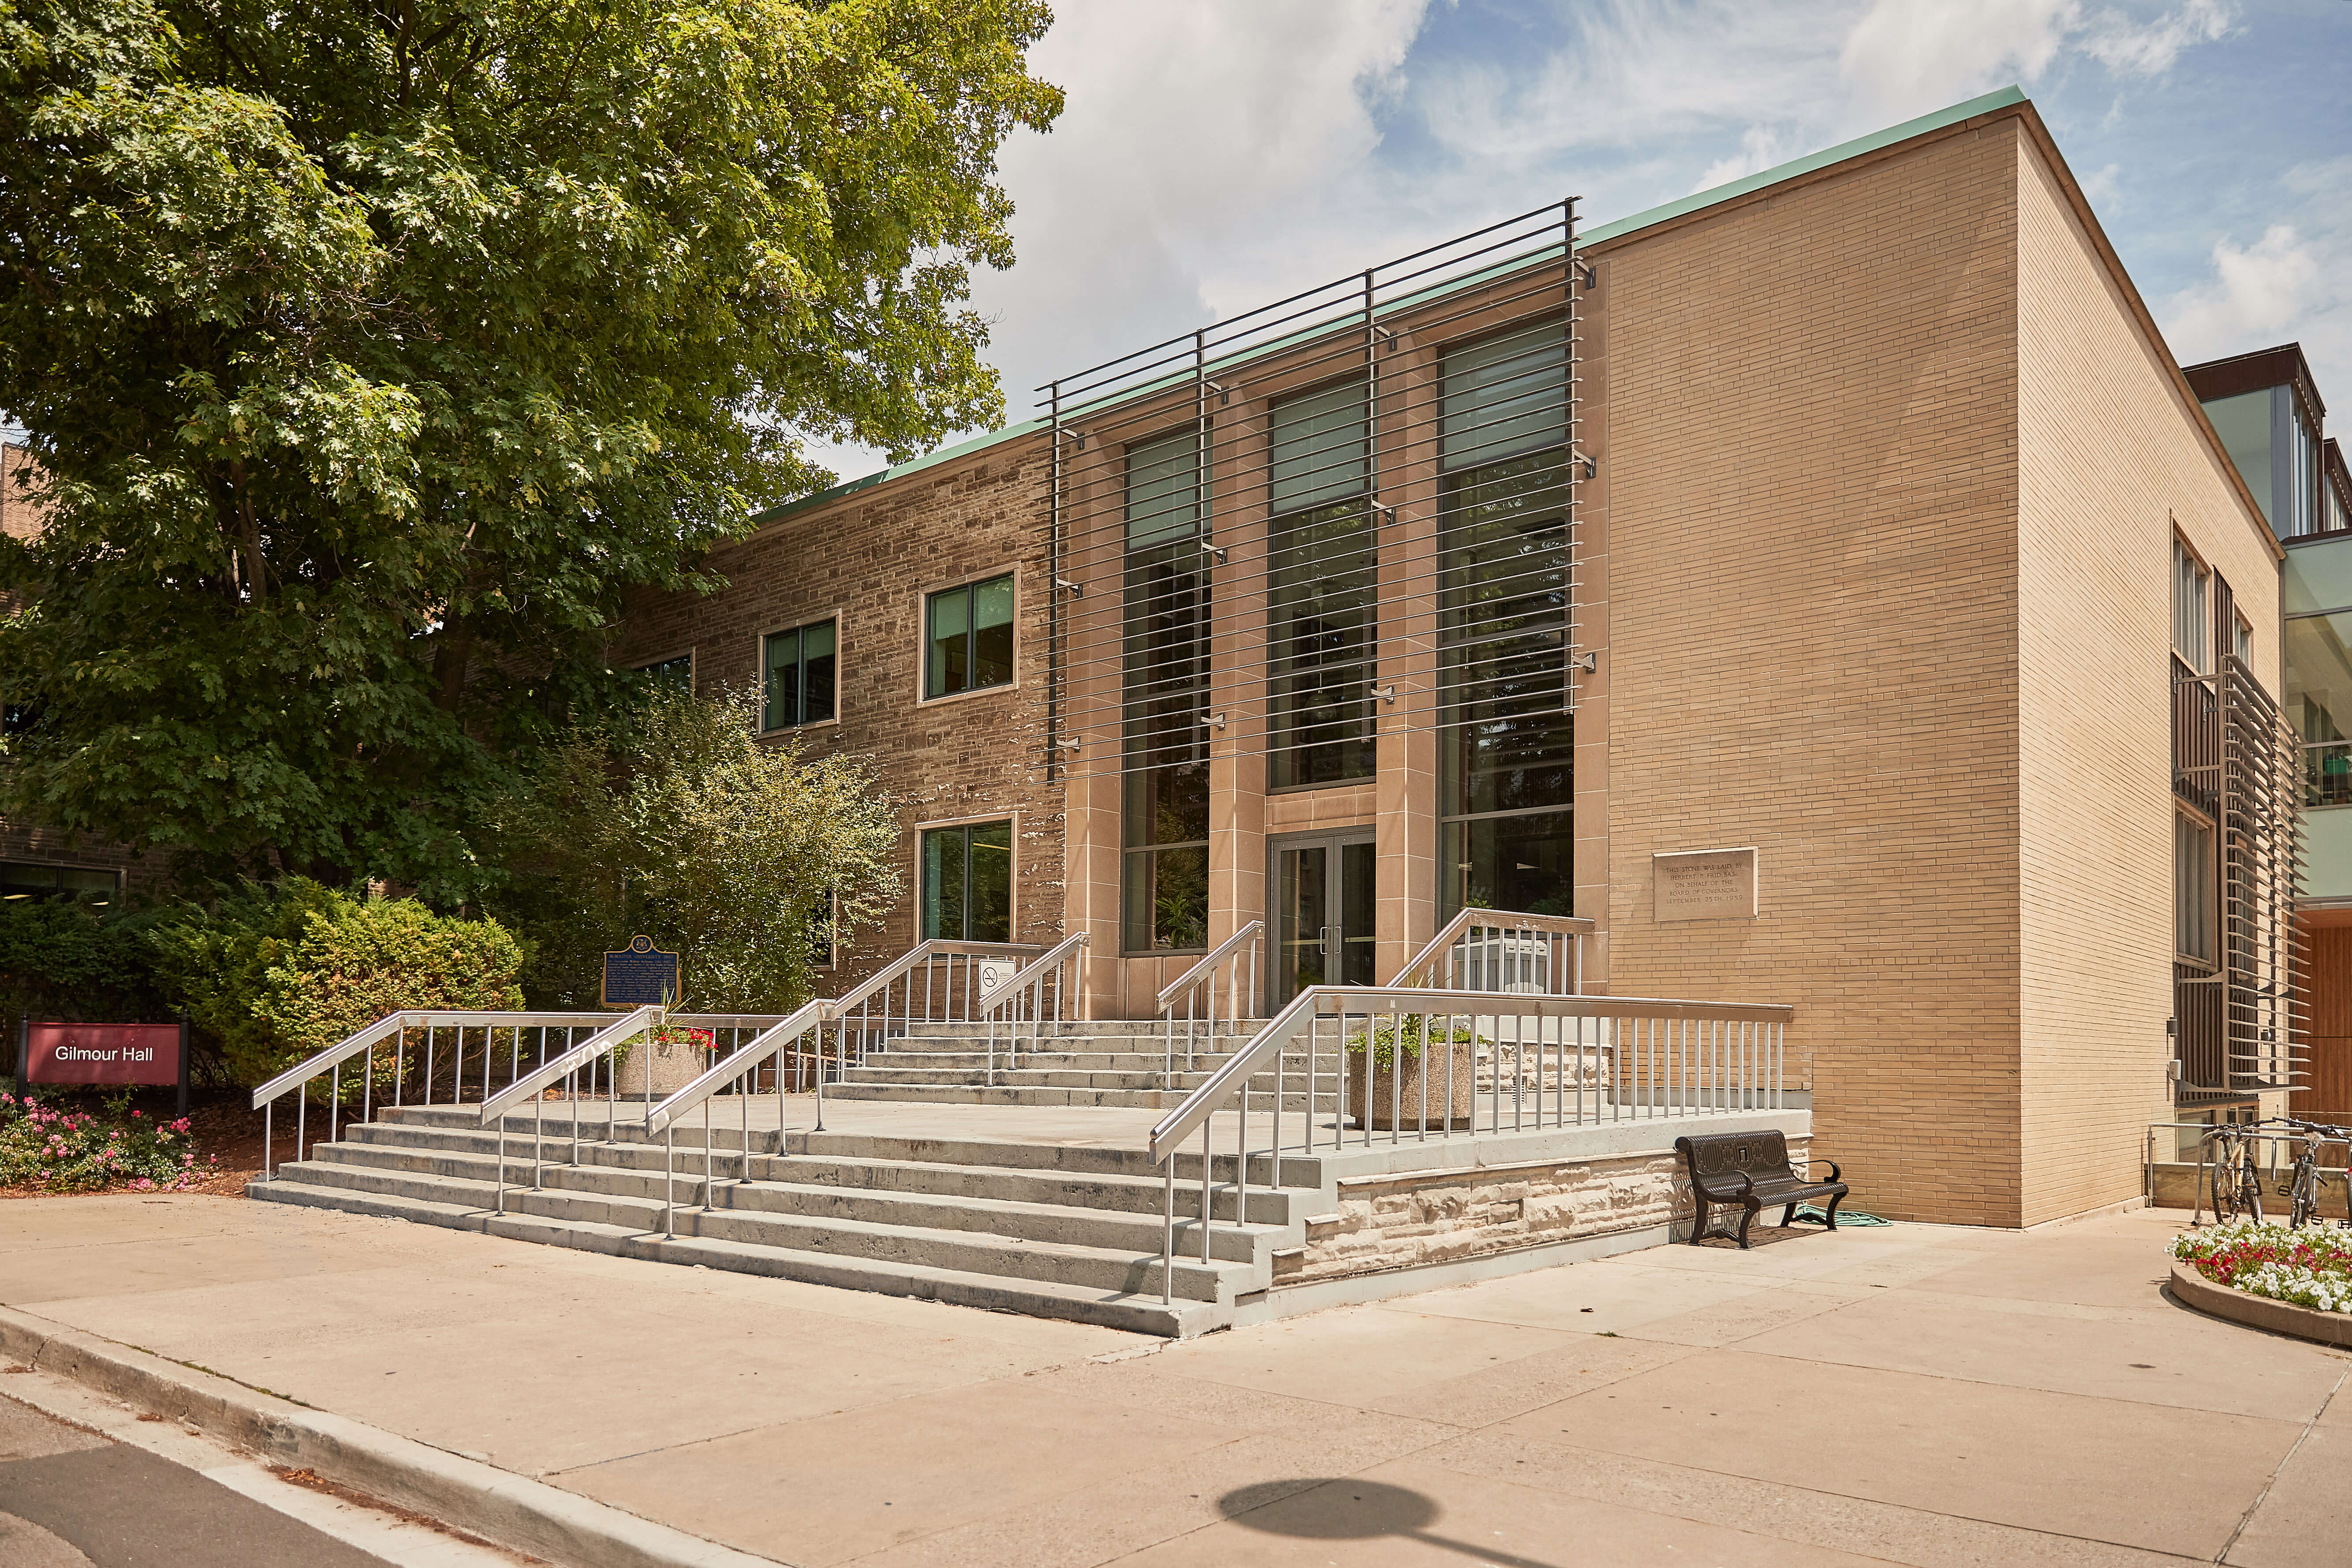 Image of Gilmour Hall, McMaster University